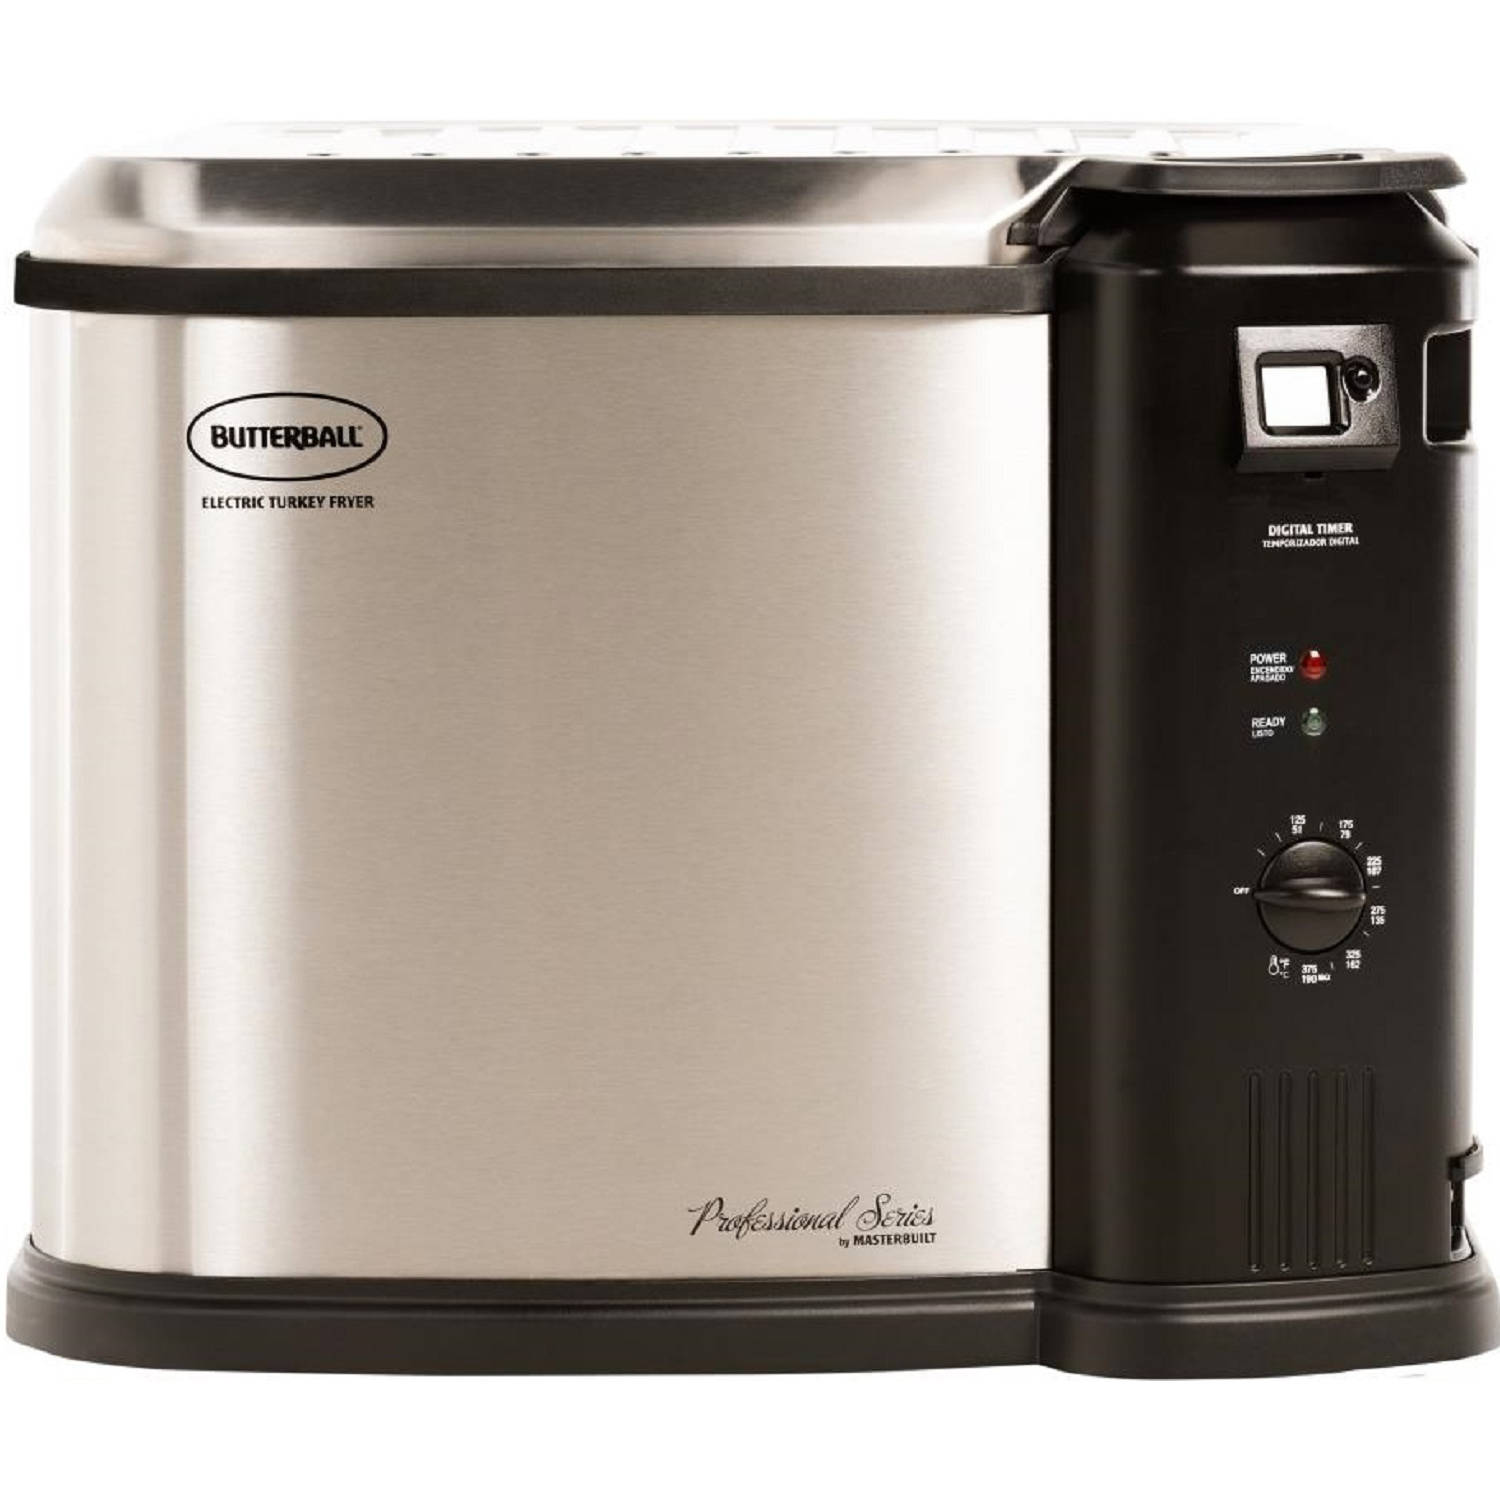 Masterbuilt 23011615 Butterball Electric Indoor Turkey Fryer, Extra Large, 1650 W, Silver